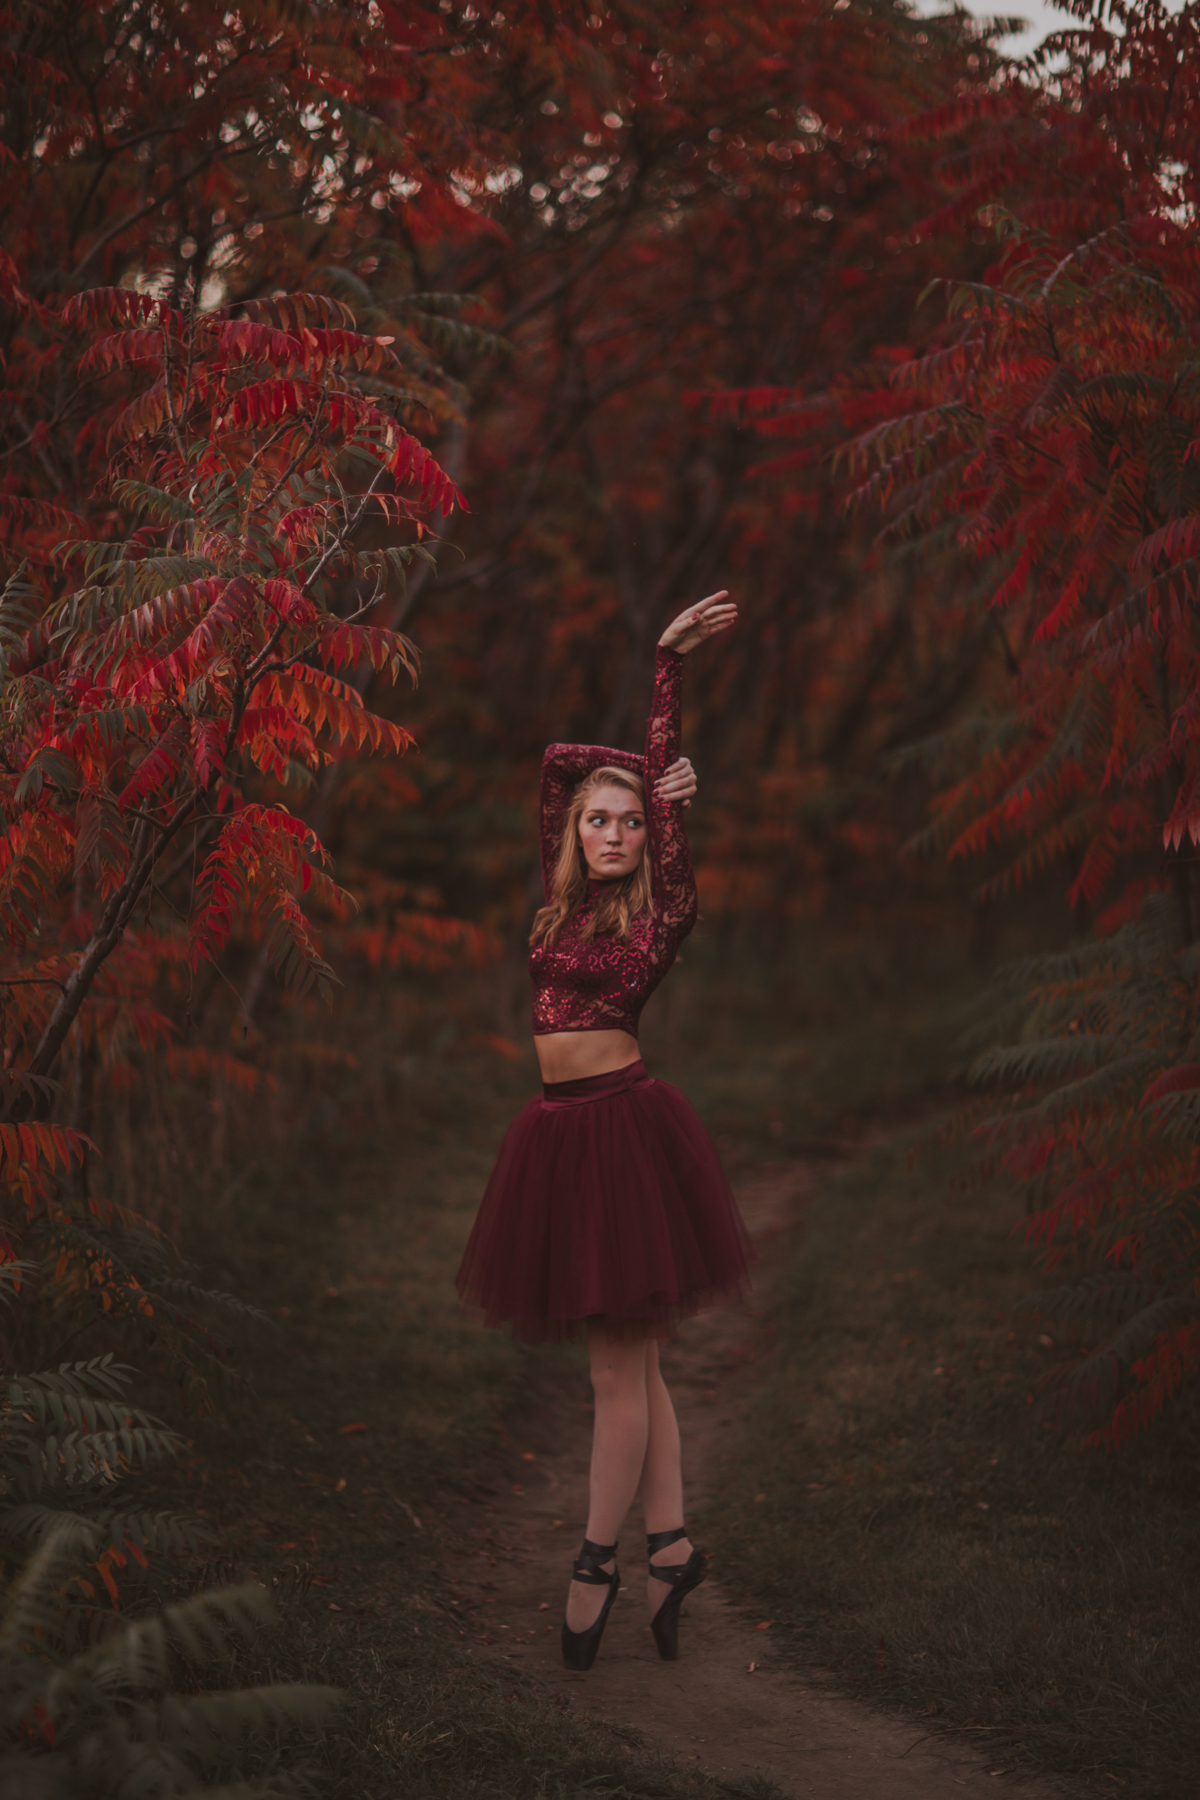 Ellie in the Woods-3836.jpg